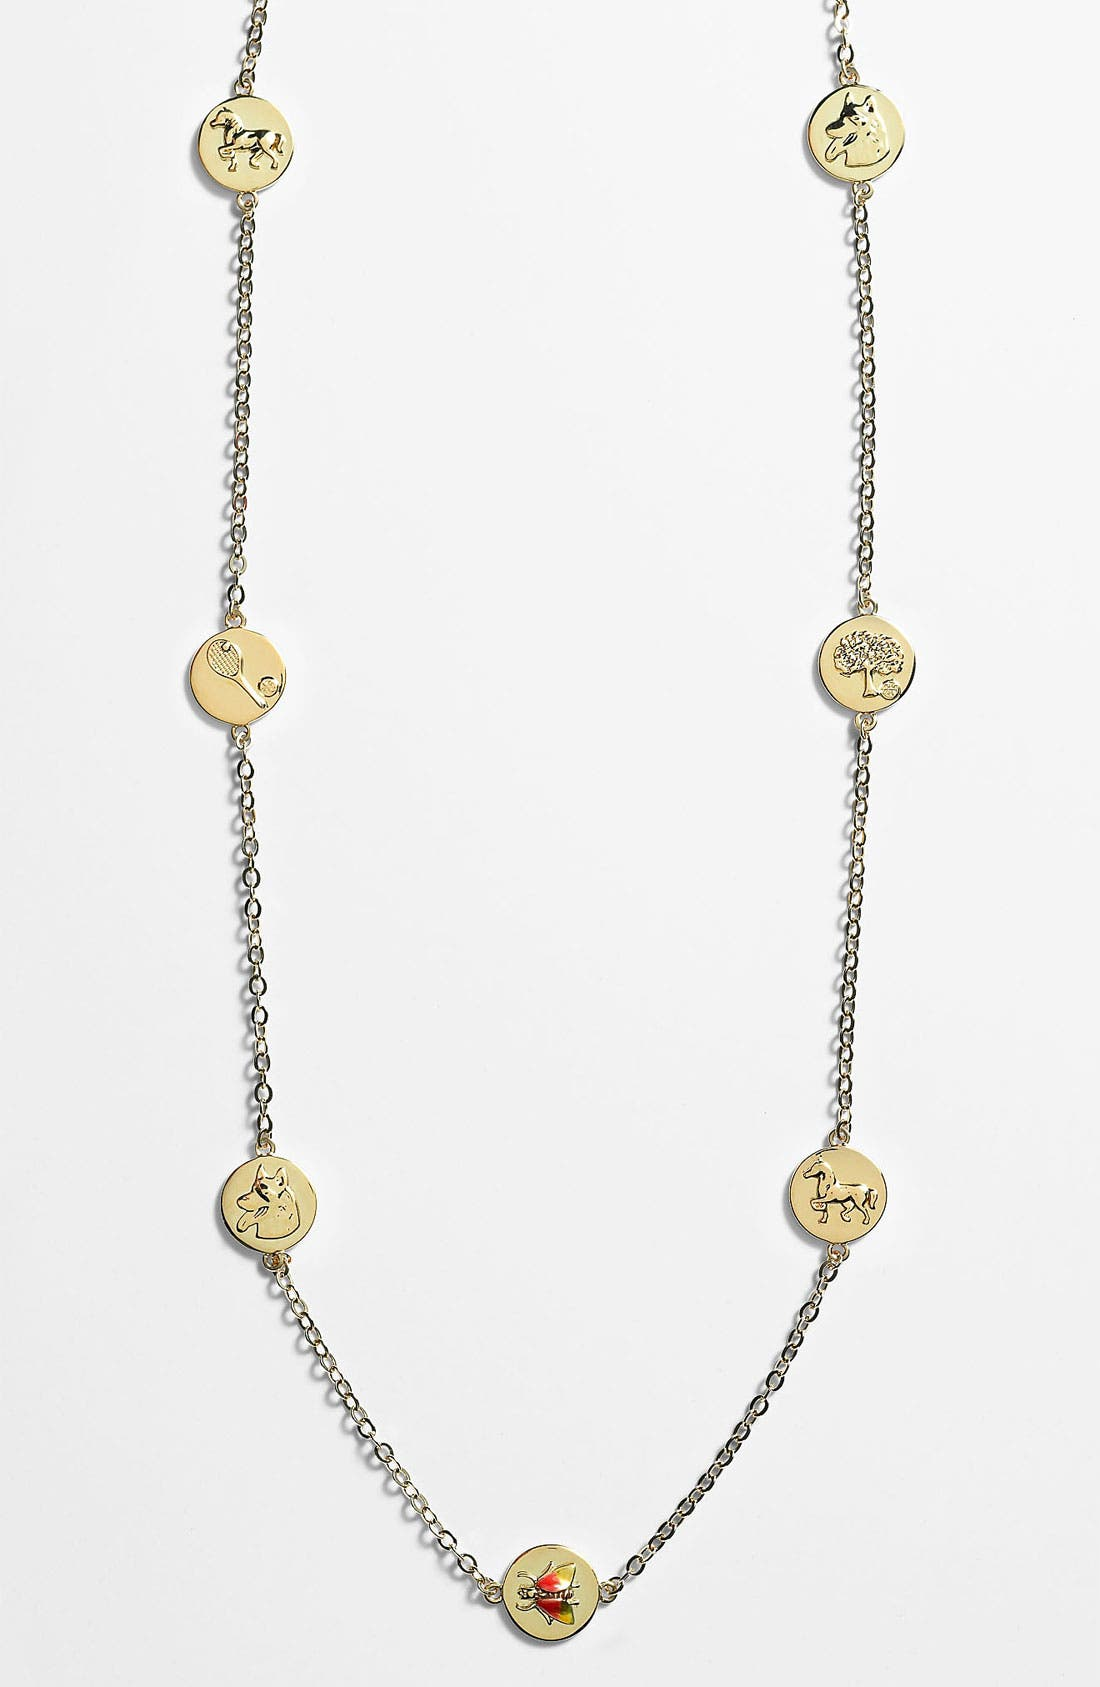 Alternate Image 1 Selected - Tory Burch 'Buddy' Long Station Necklace